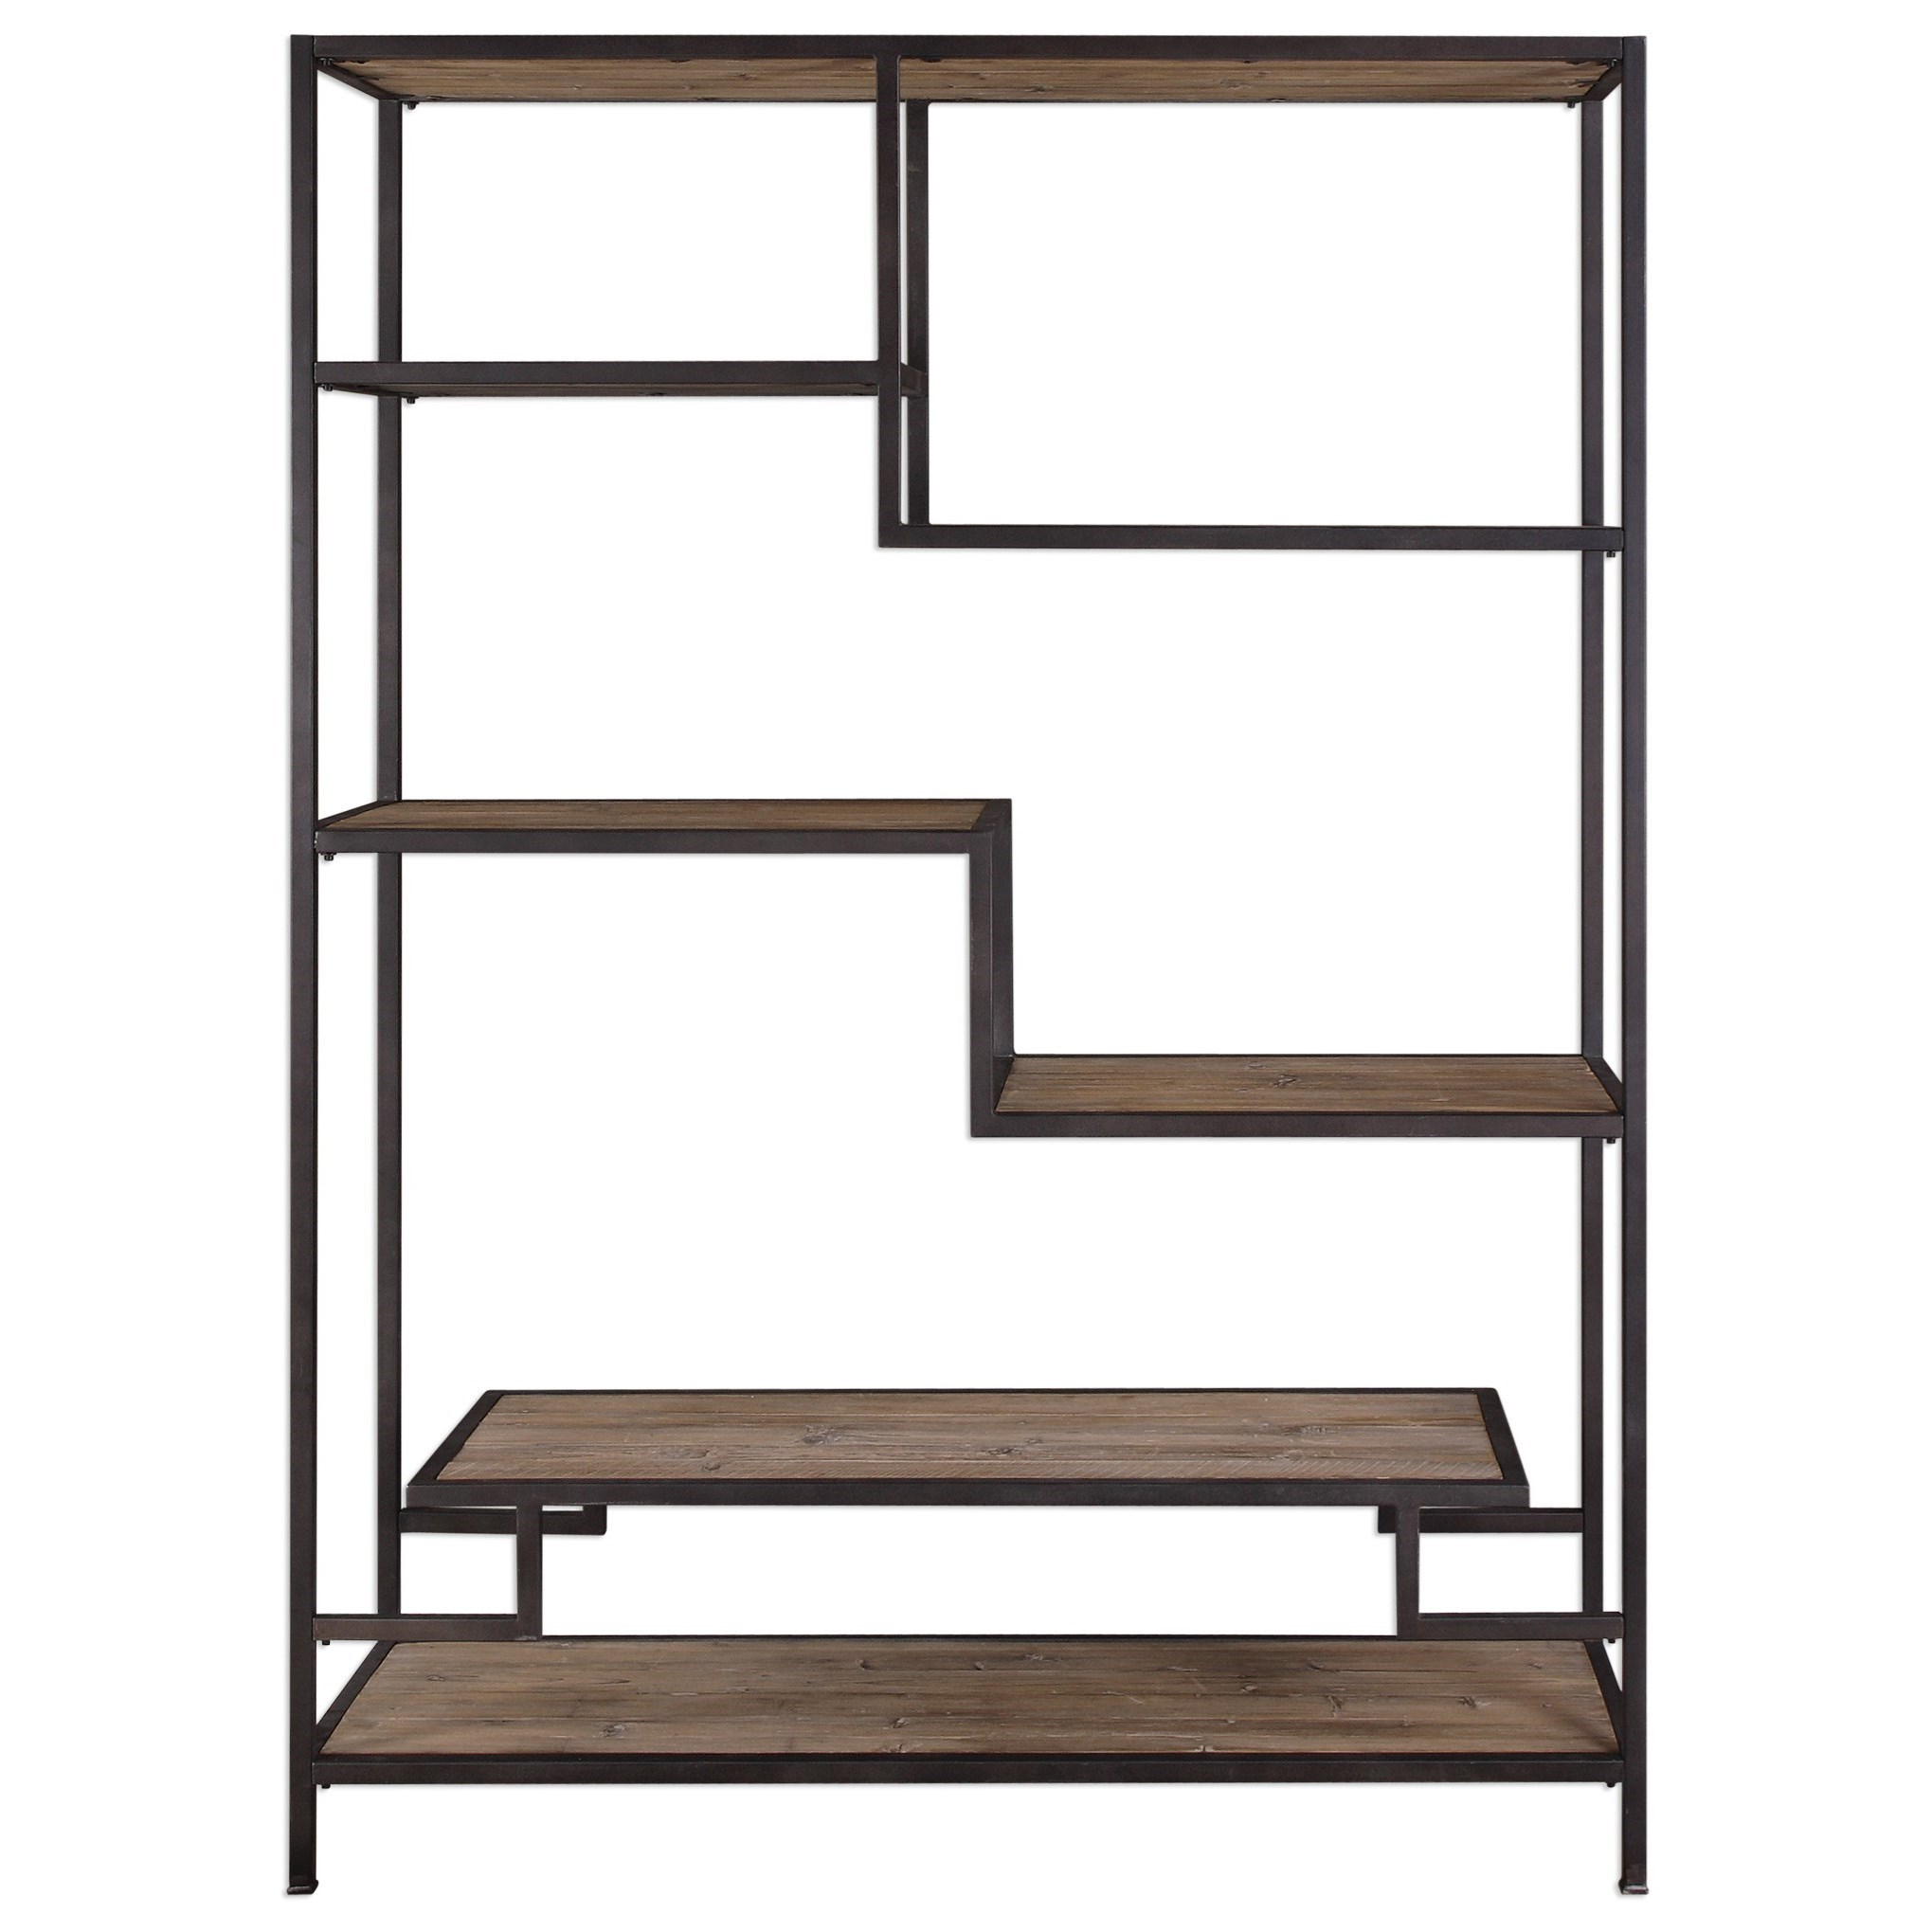 Accent Furniture - Bookcases  Sherwin Industrial Etagere by Uttermost at Dunk & Bright Furniture